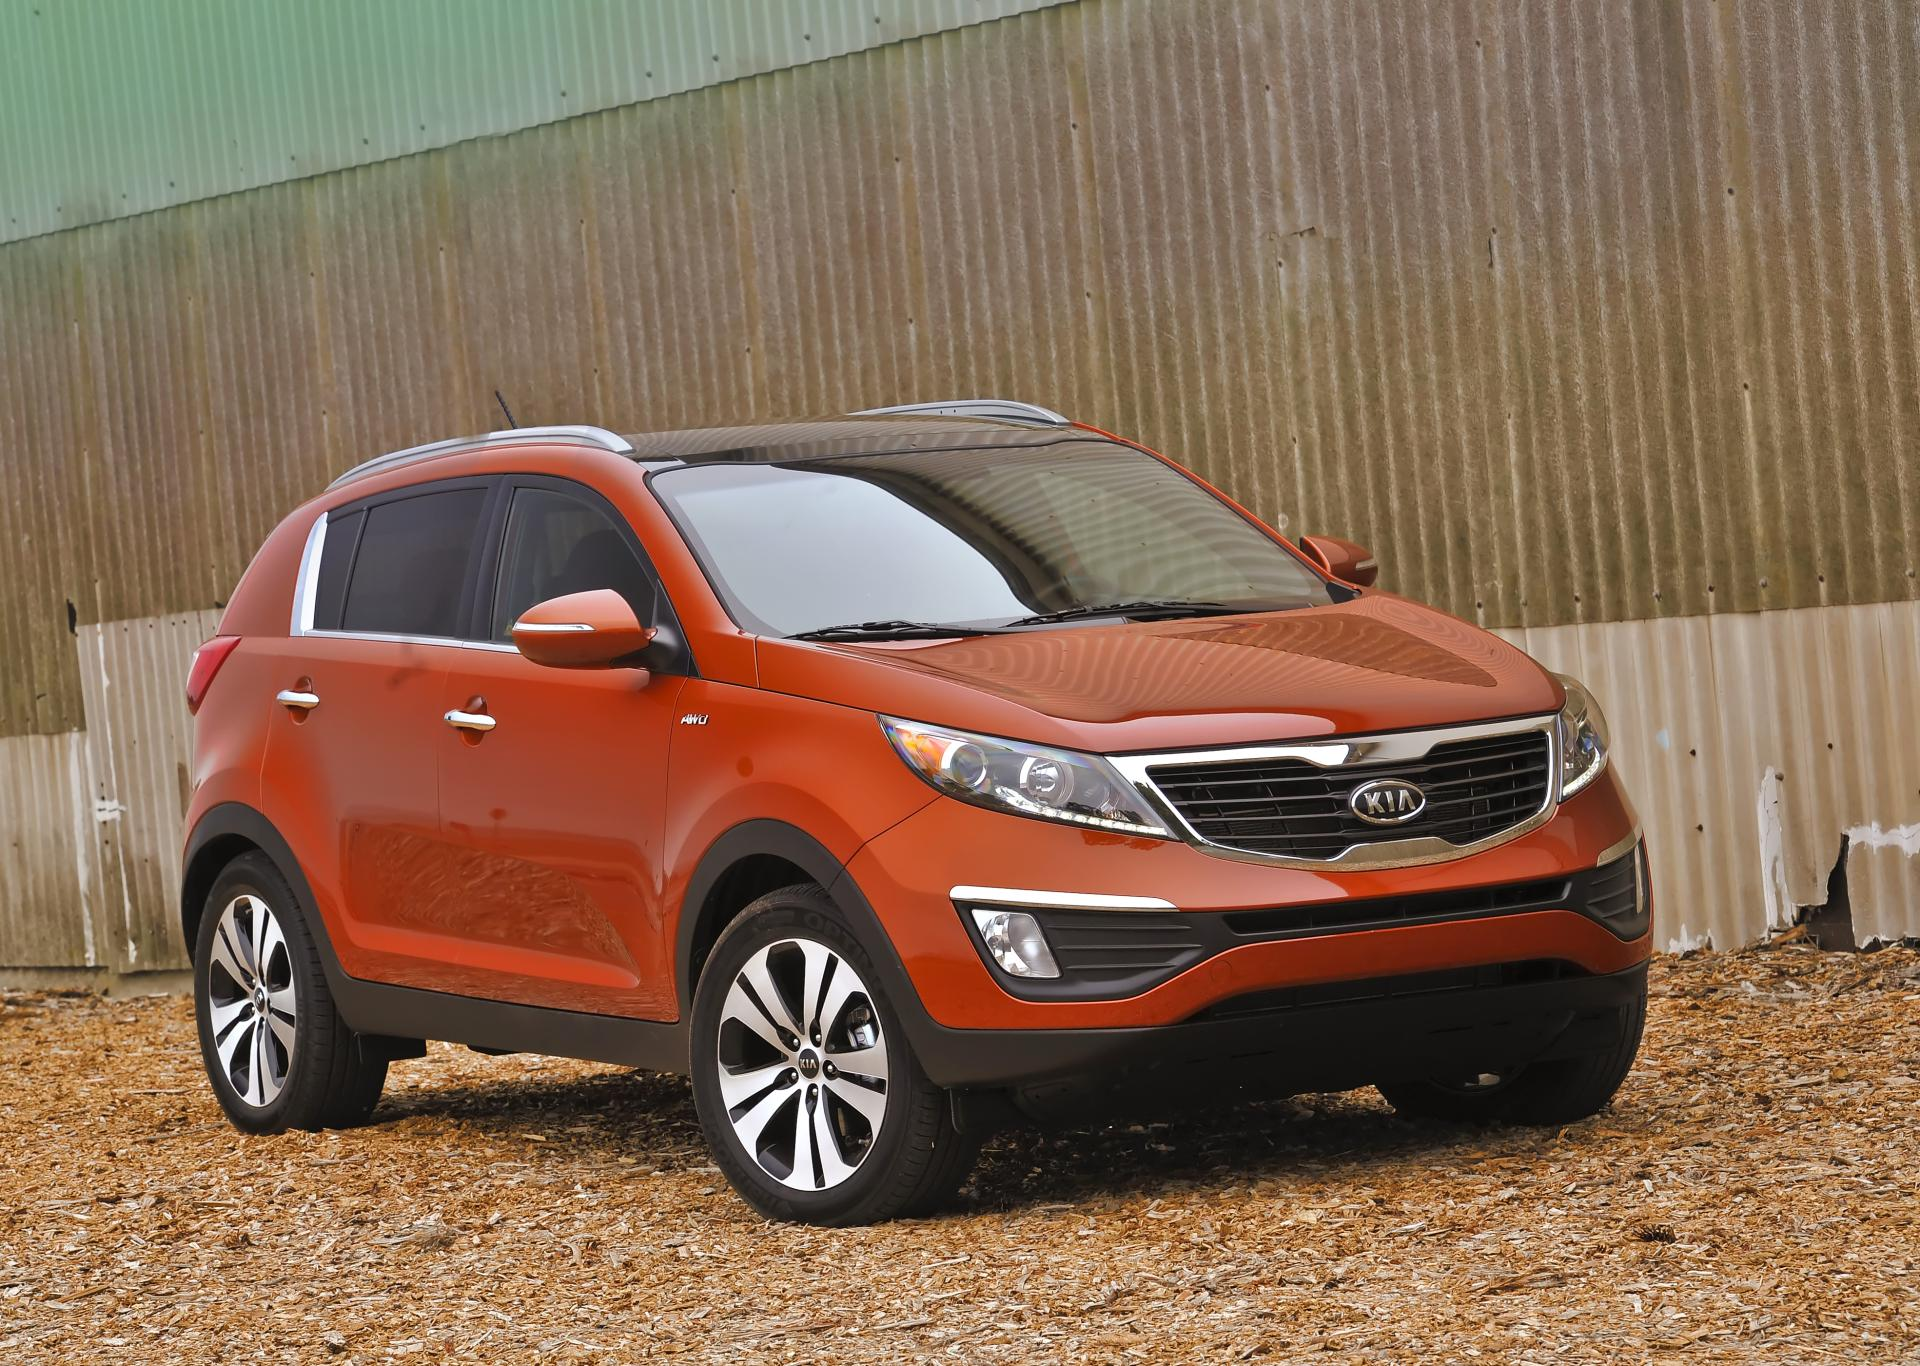 2012 kia sportage news and information conceptcarz publicscrutiny Image collections